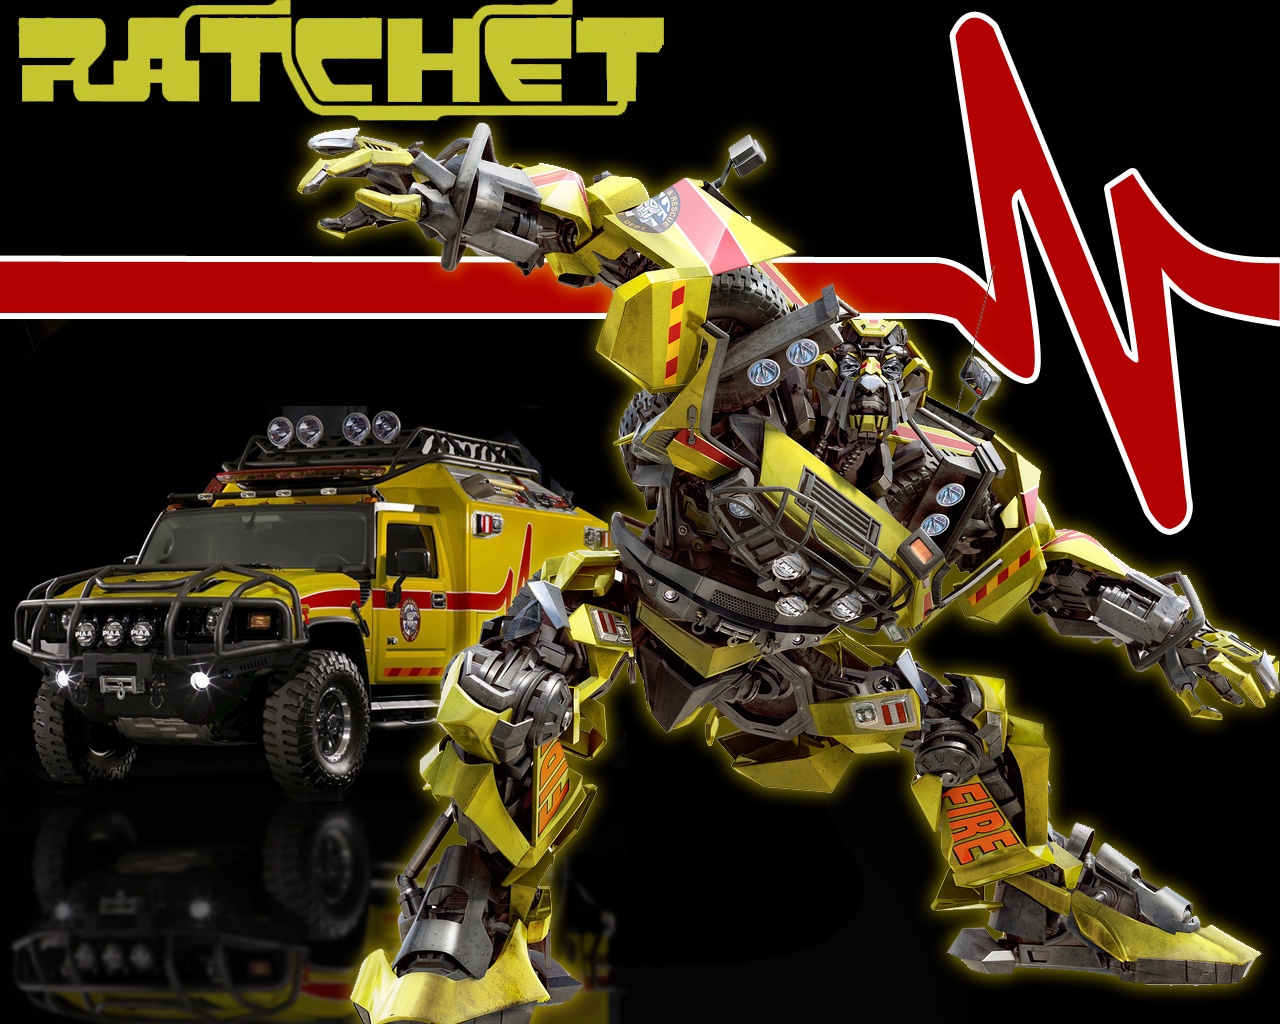 Transformers Hot New Movies Cars Wallpaper 25784333